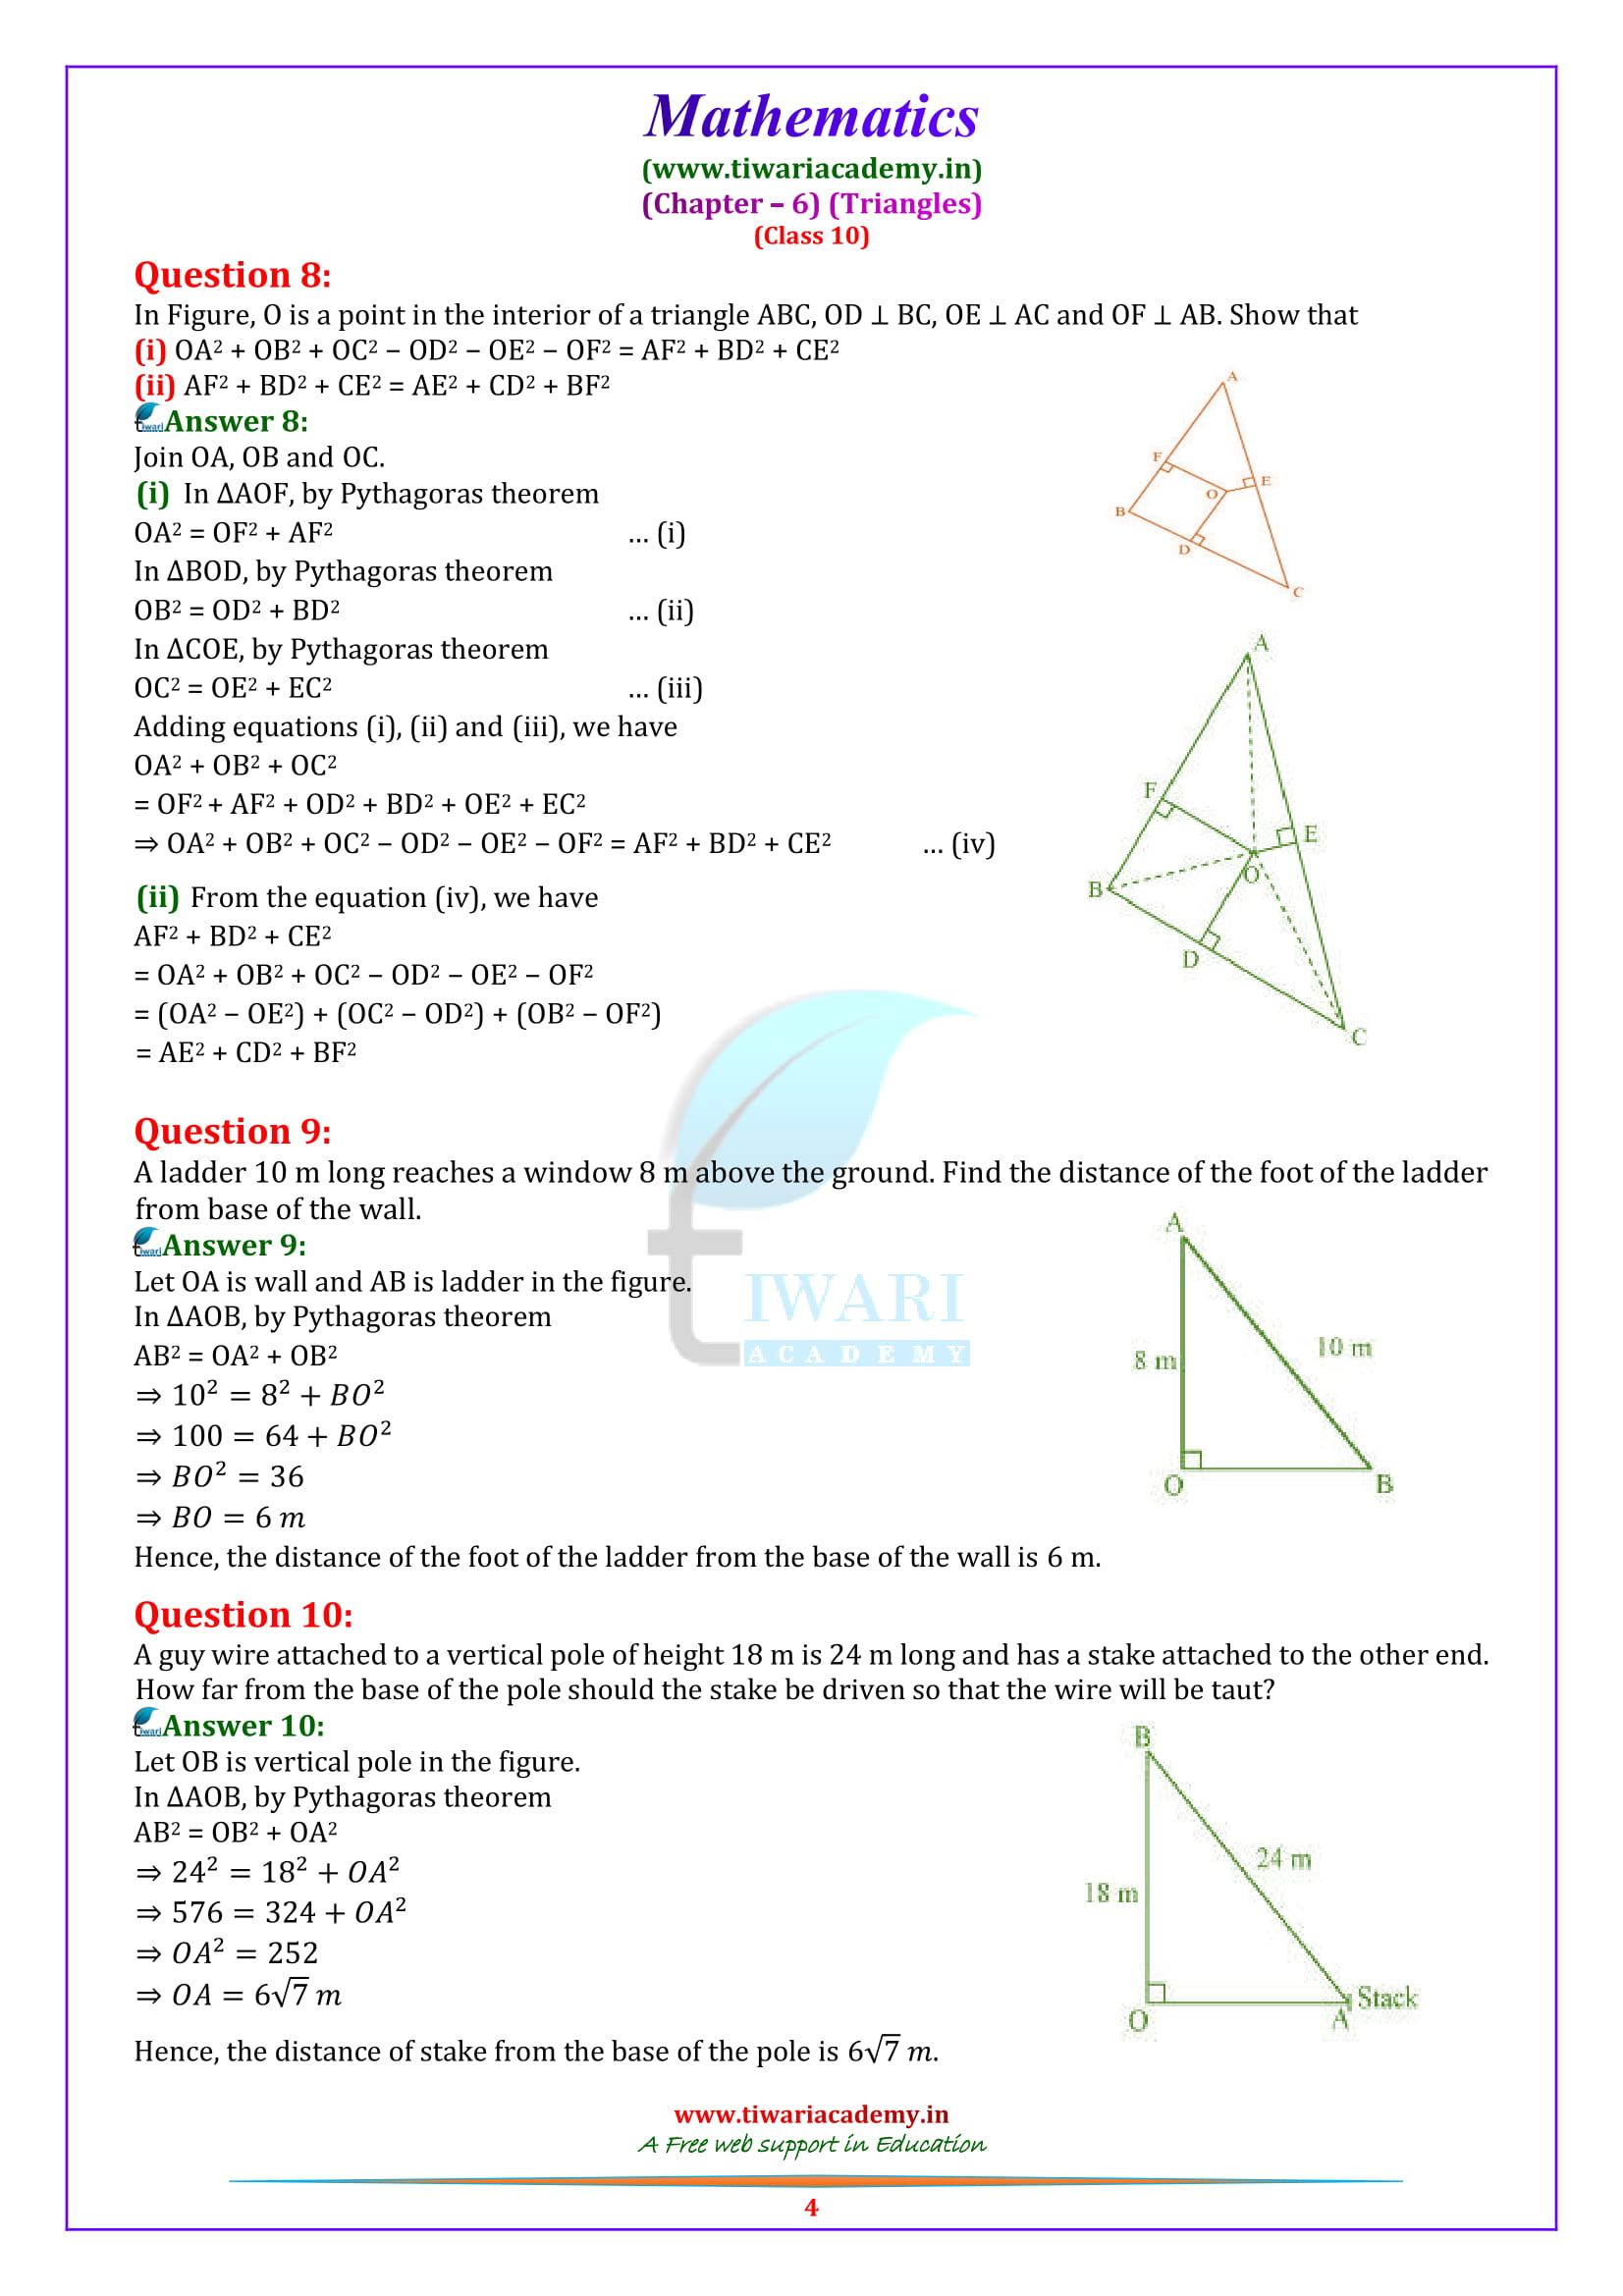 10 Maths Exercise 6.5 solutions all questions answers